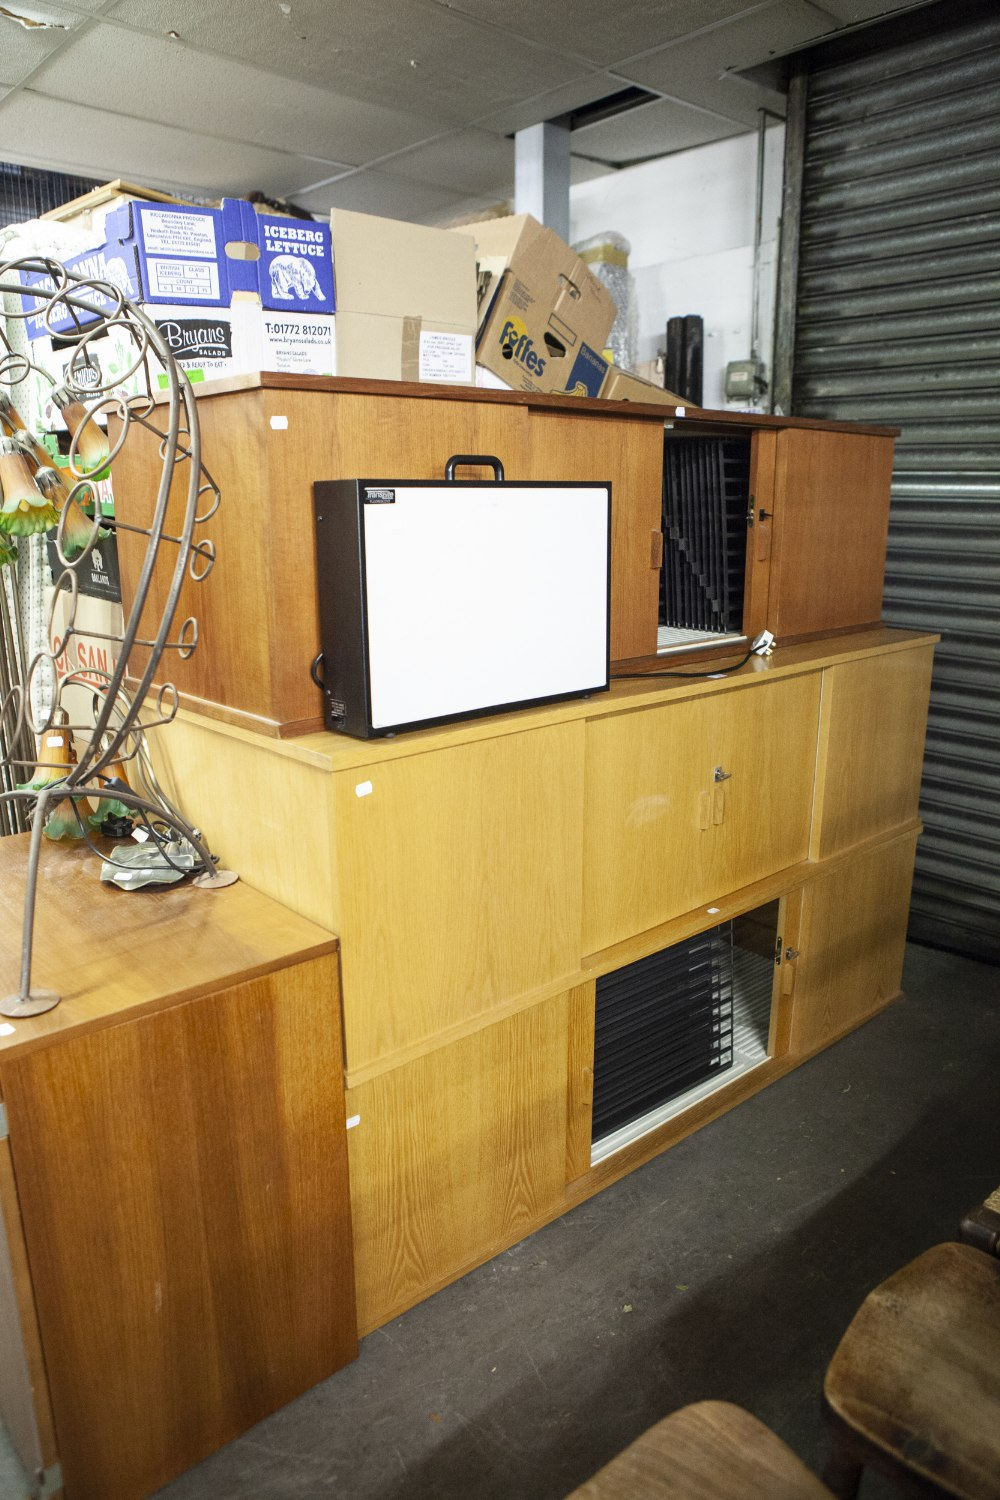 Lot 60 - THREE ABADIA CABINETS FOR SLIDE VIEWING AND STORAGE 2 x 5000 AND 1 X 2500 AND A FLORESCENT LIGHT BOX